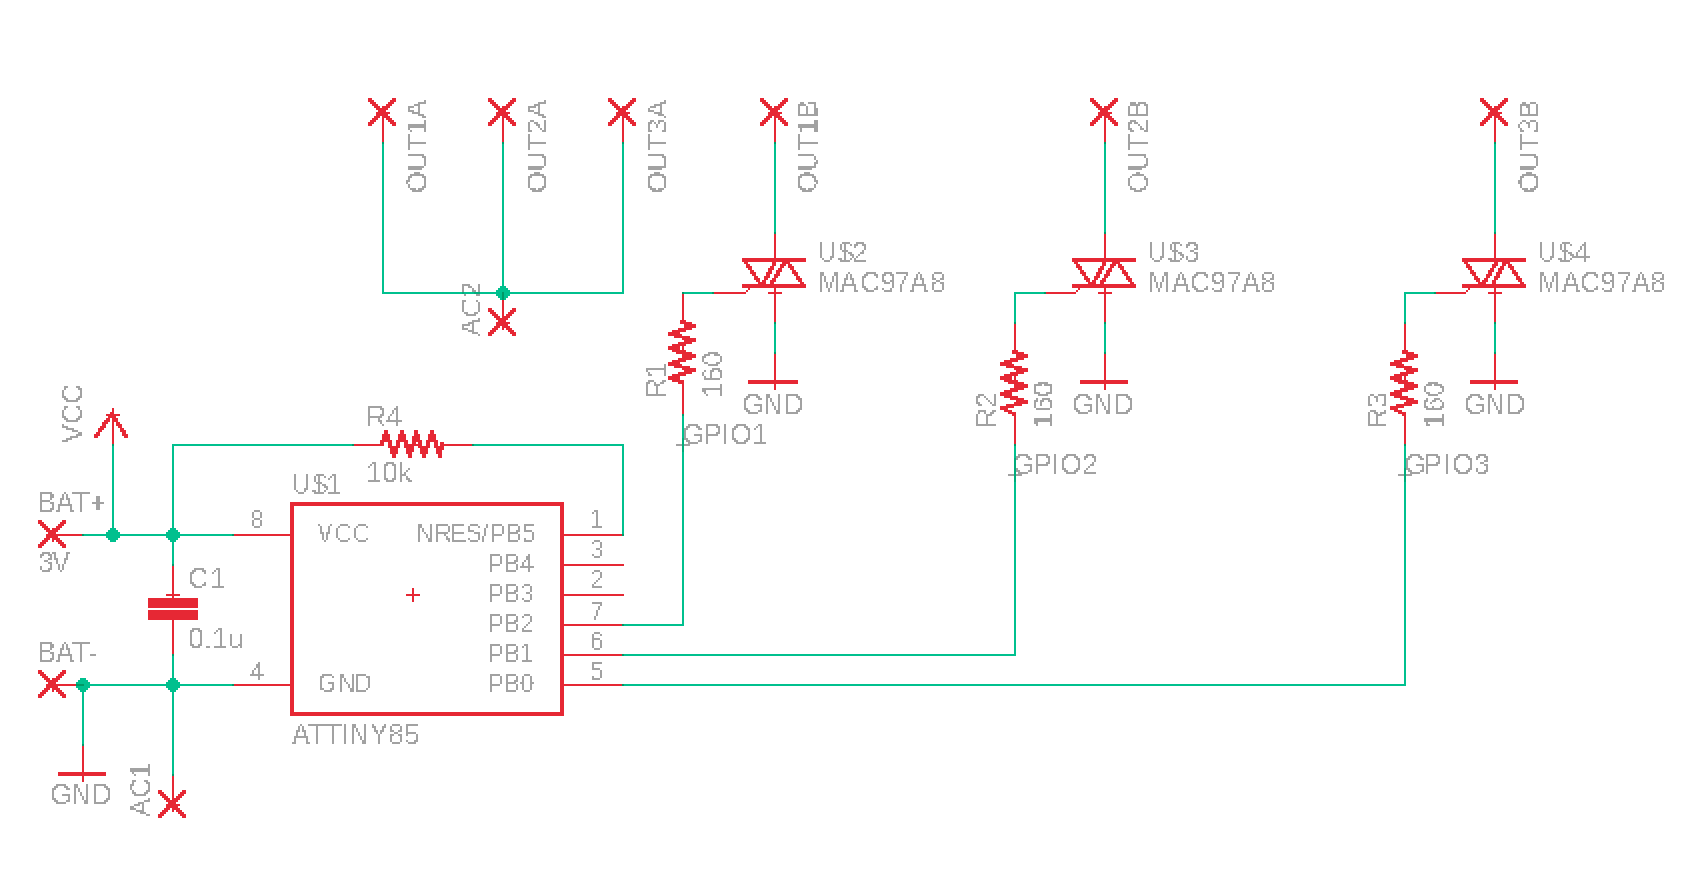 hight resolution of my triac turns on when gate attached to vcc good but also when connected to ground bad